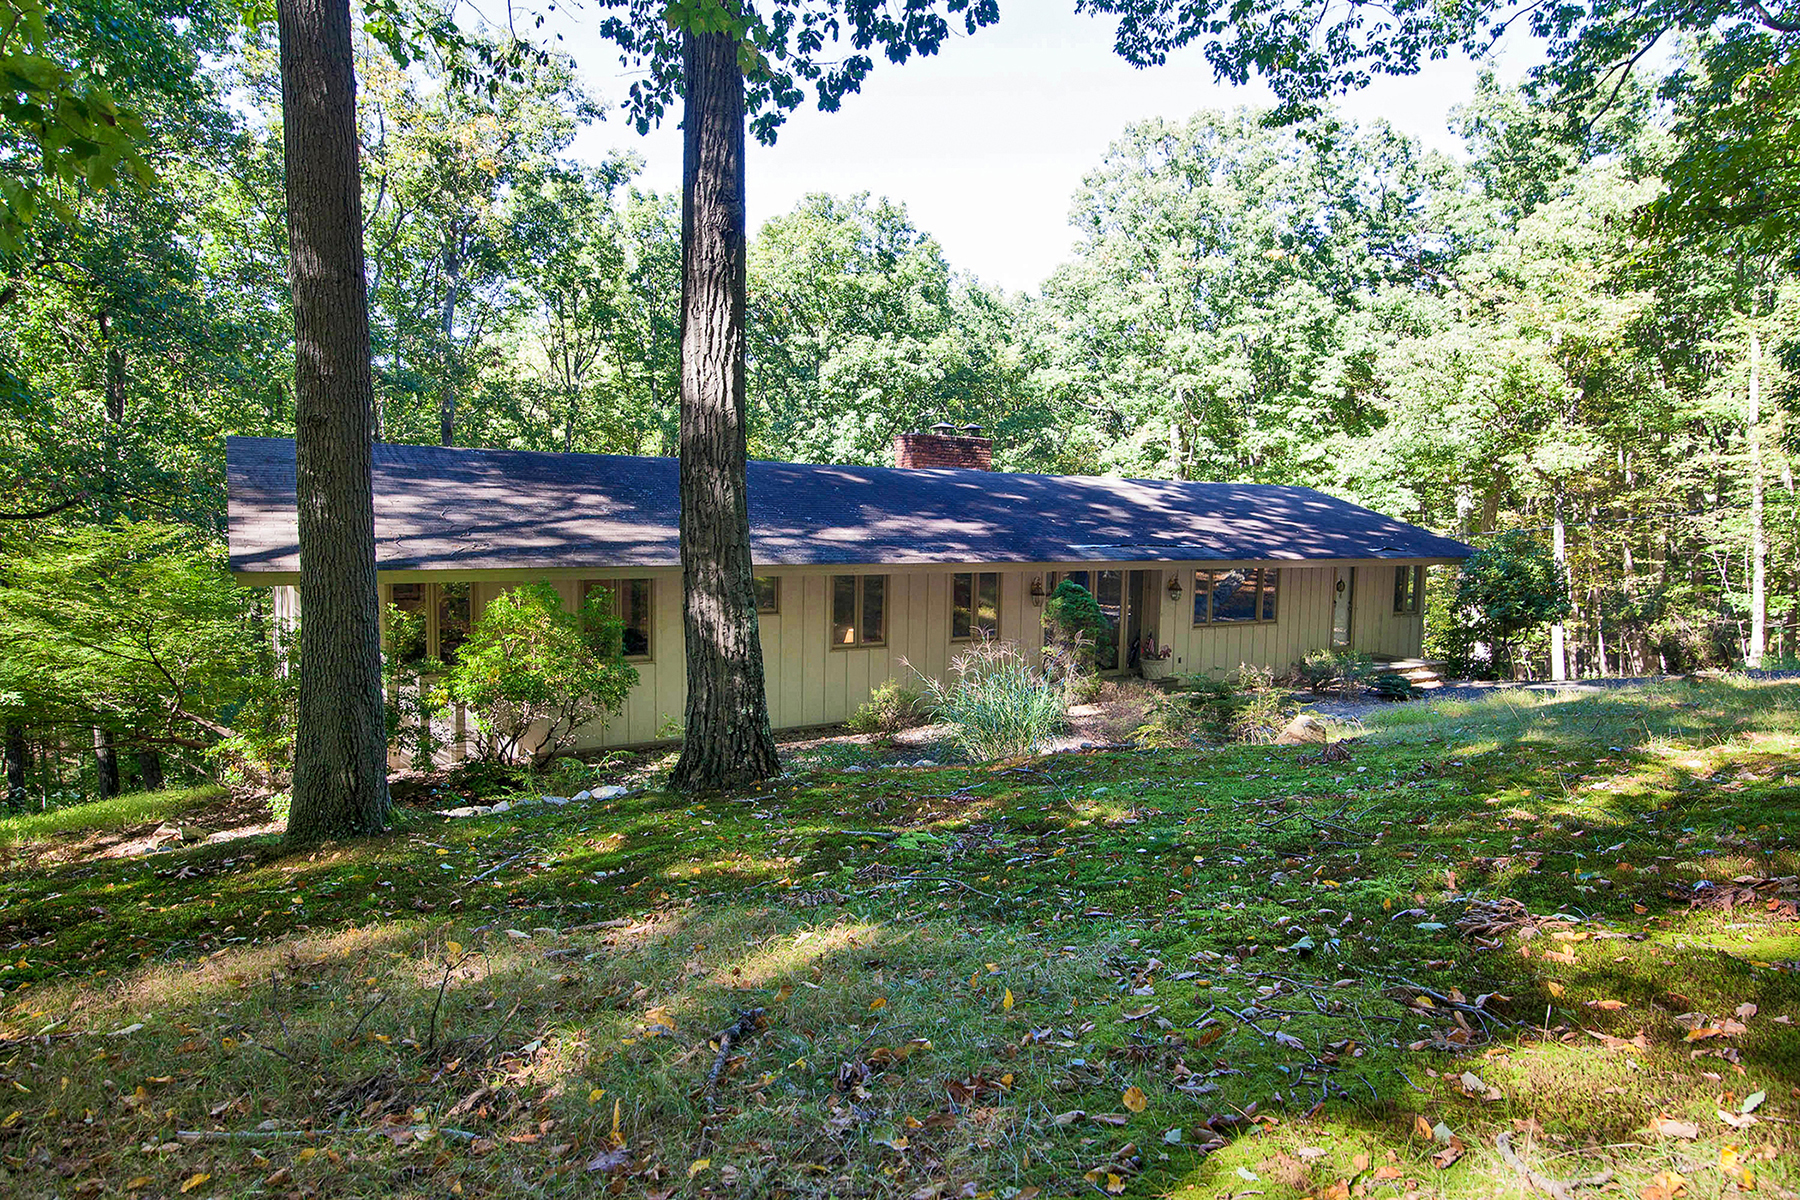 Single Family Home for Sale at Comfortable Ranch 41 Ravine Lake Road Bernardsville, New Jersey 07924 United States